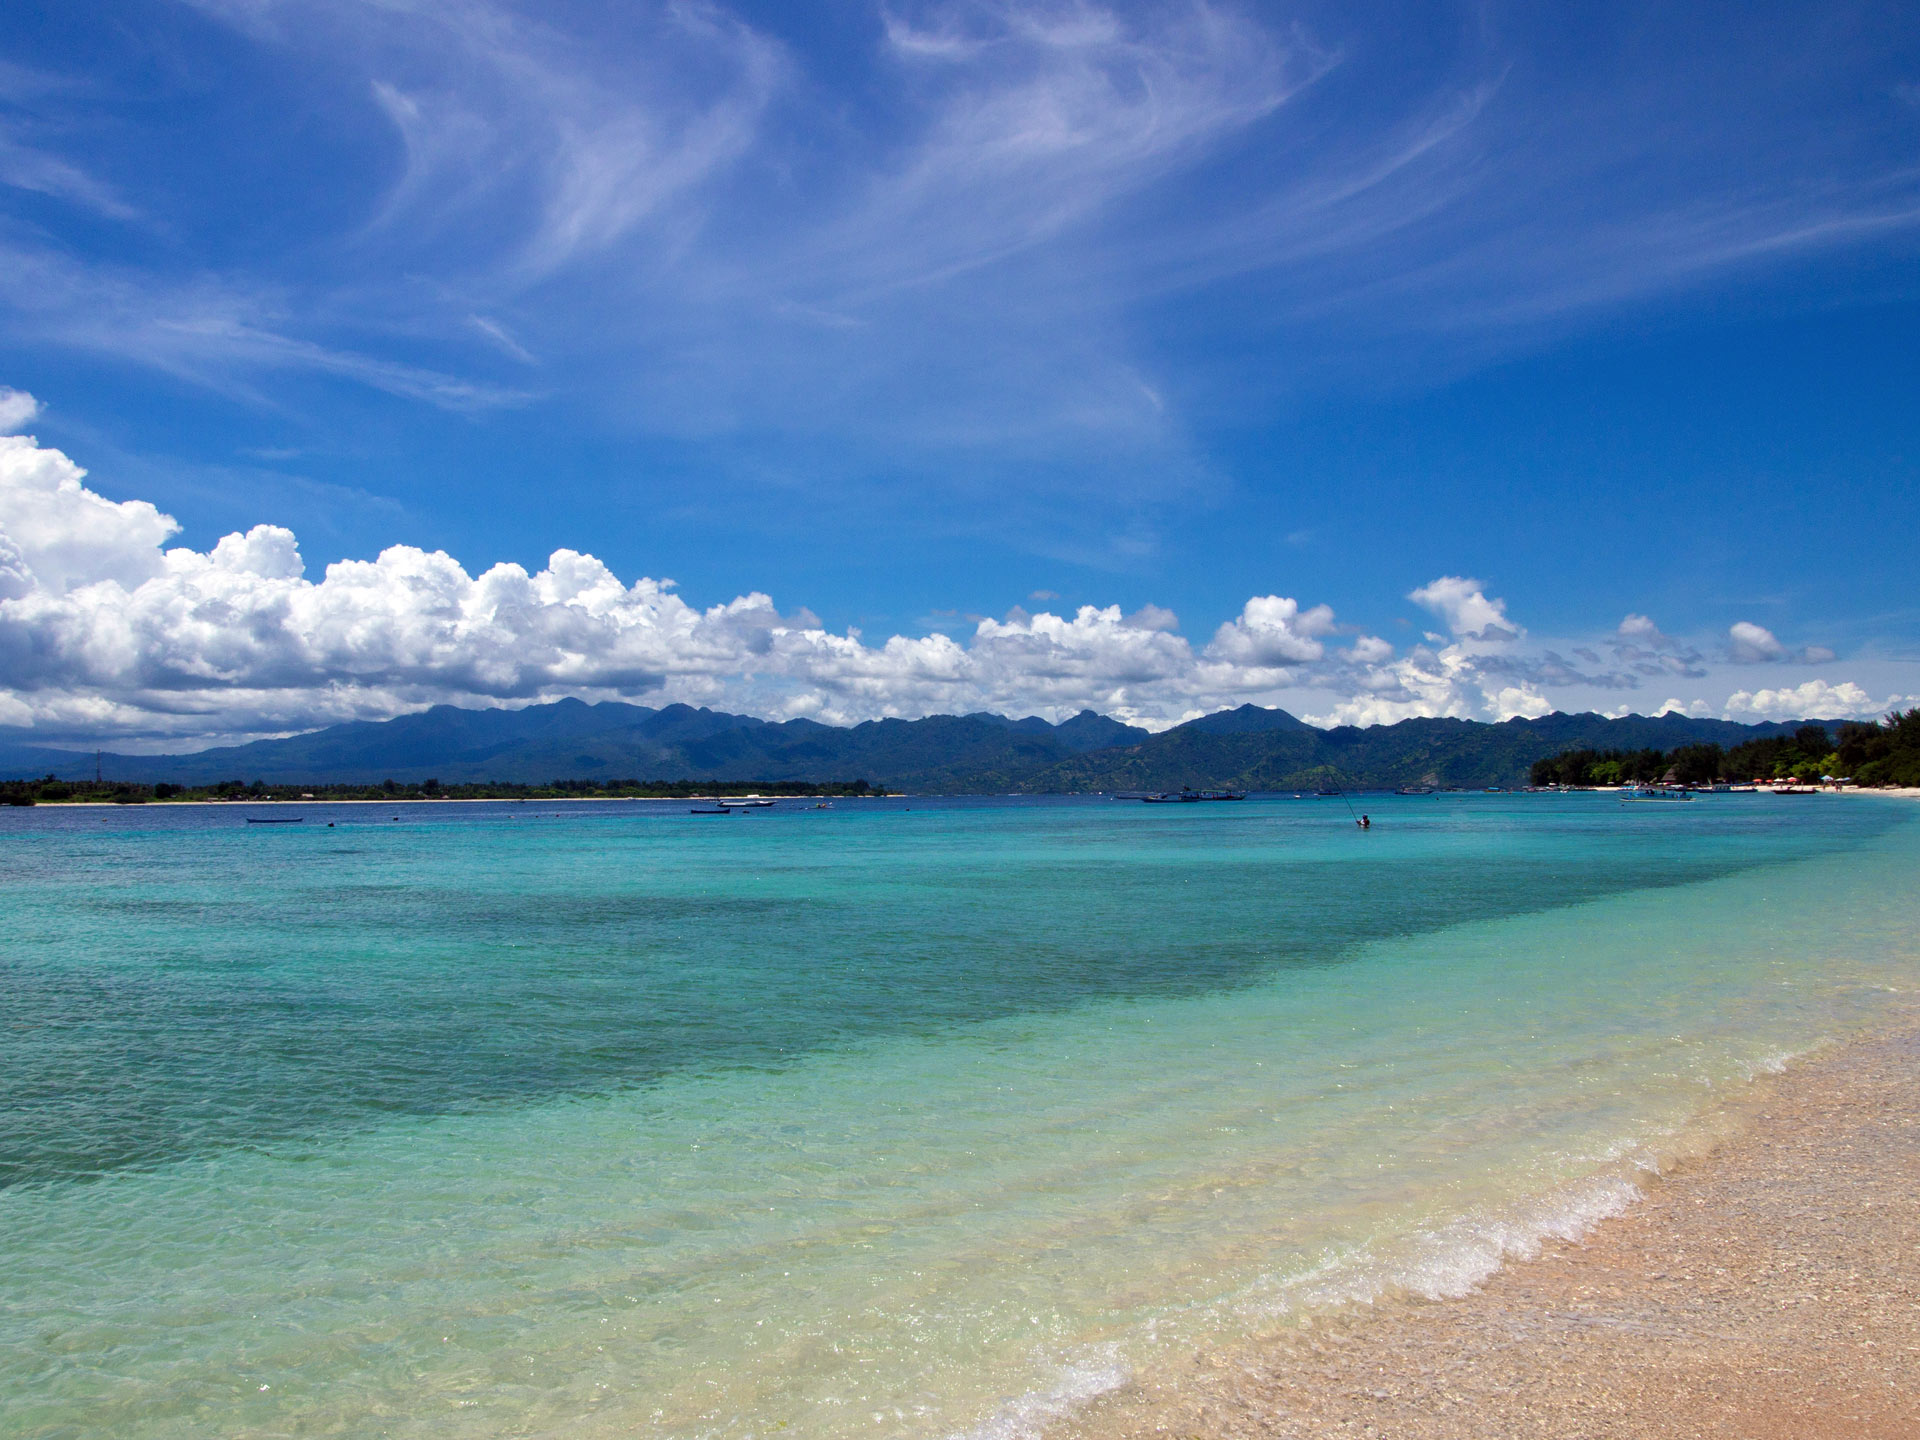 Our Trip From Bali To The Gili Islands Or Welcome To Our Little